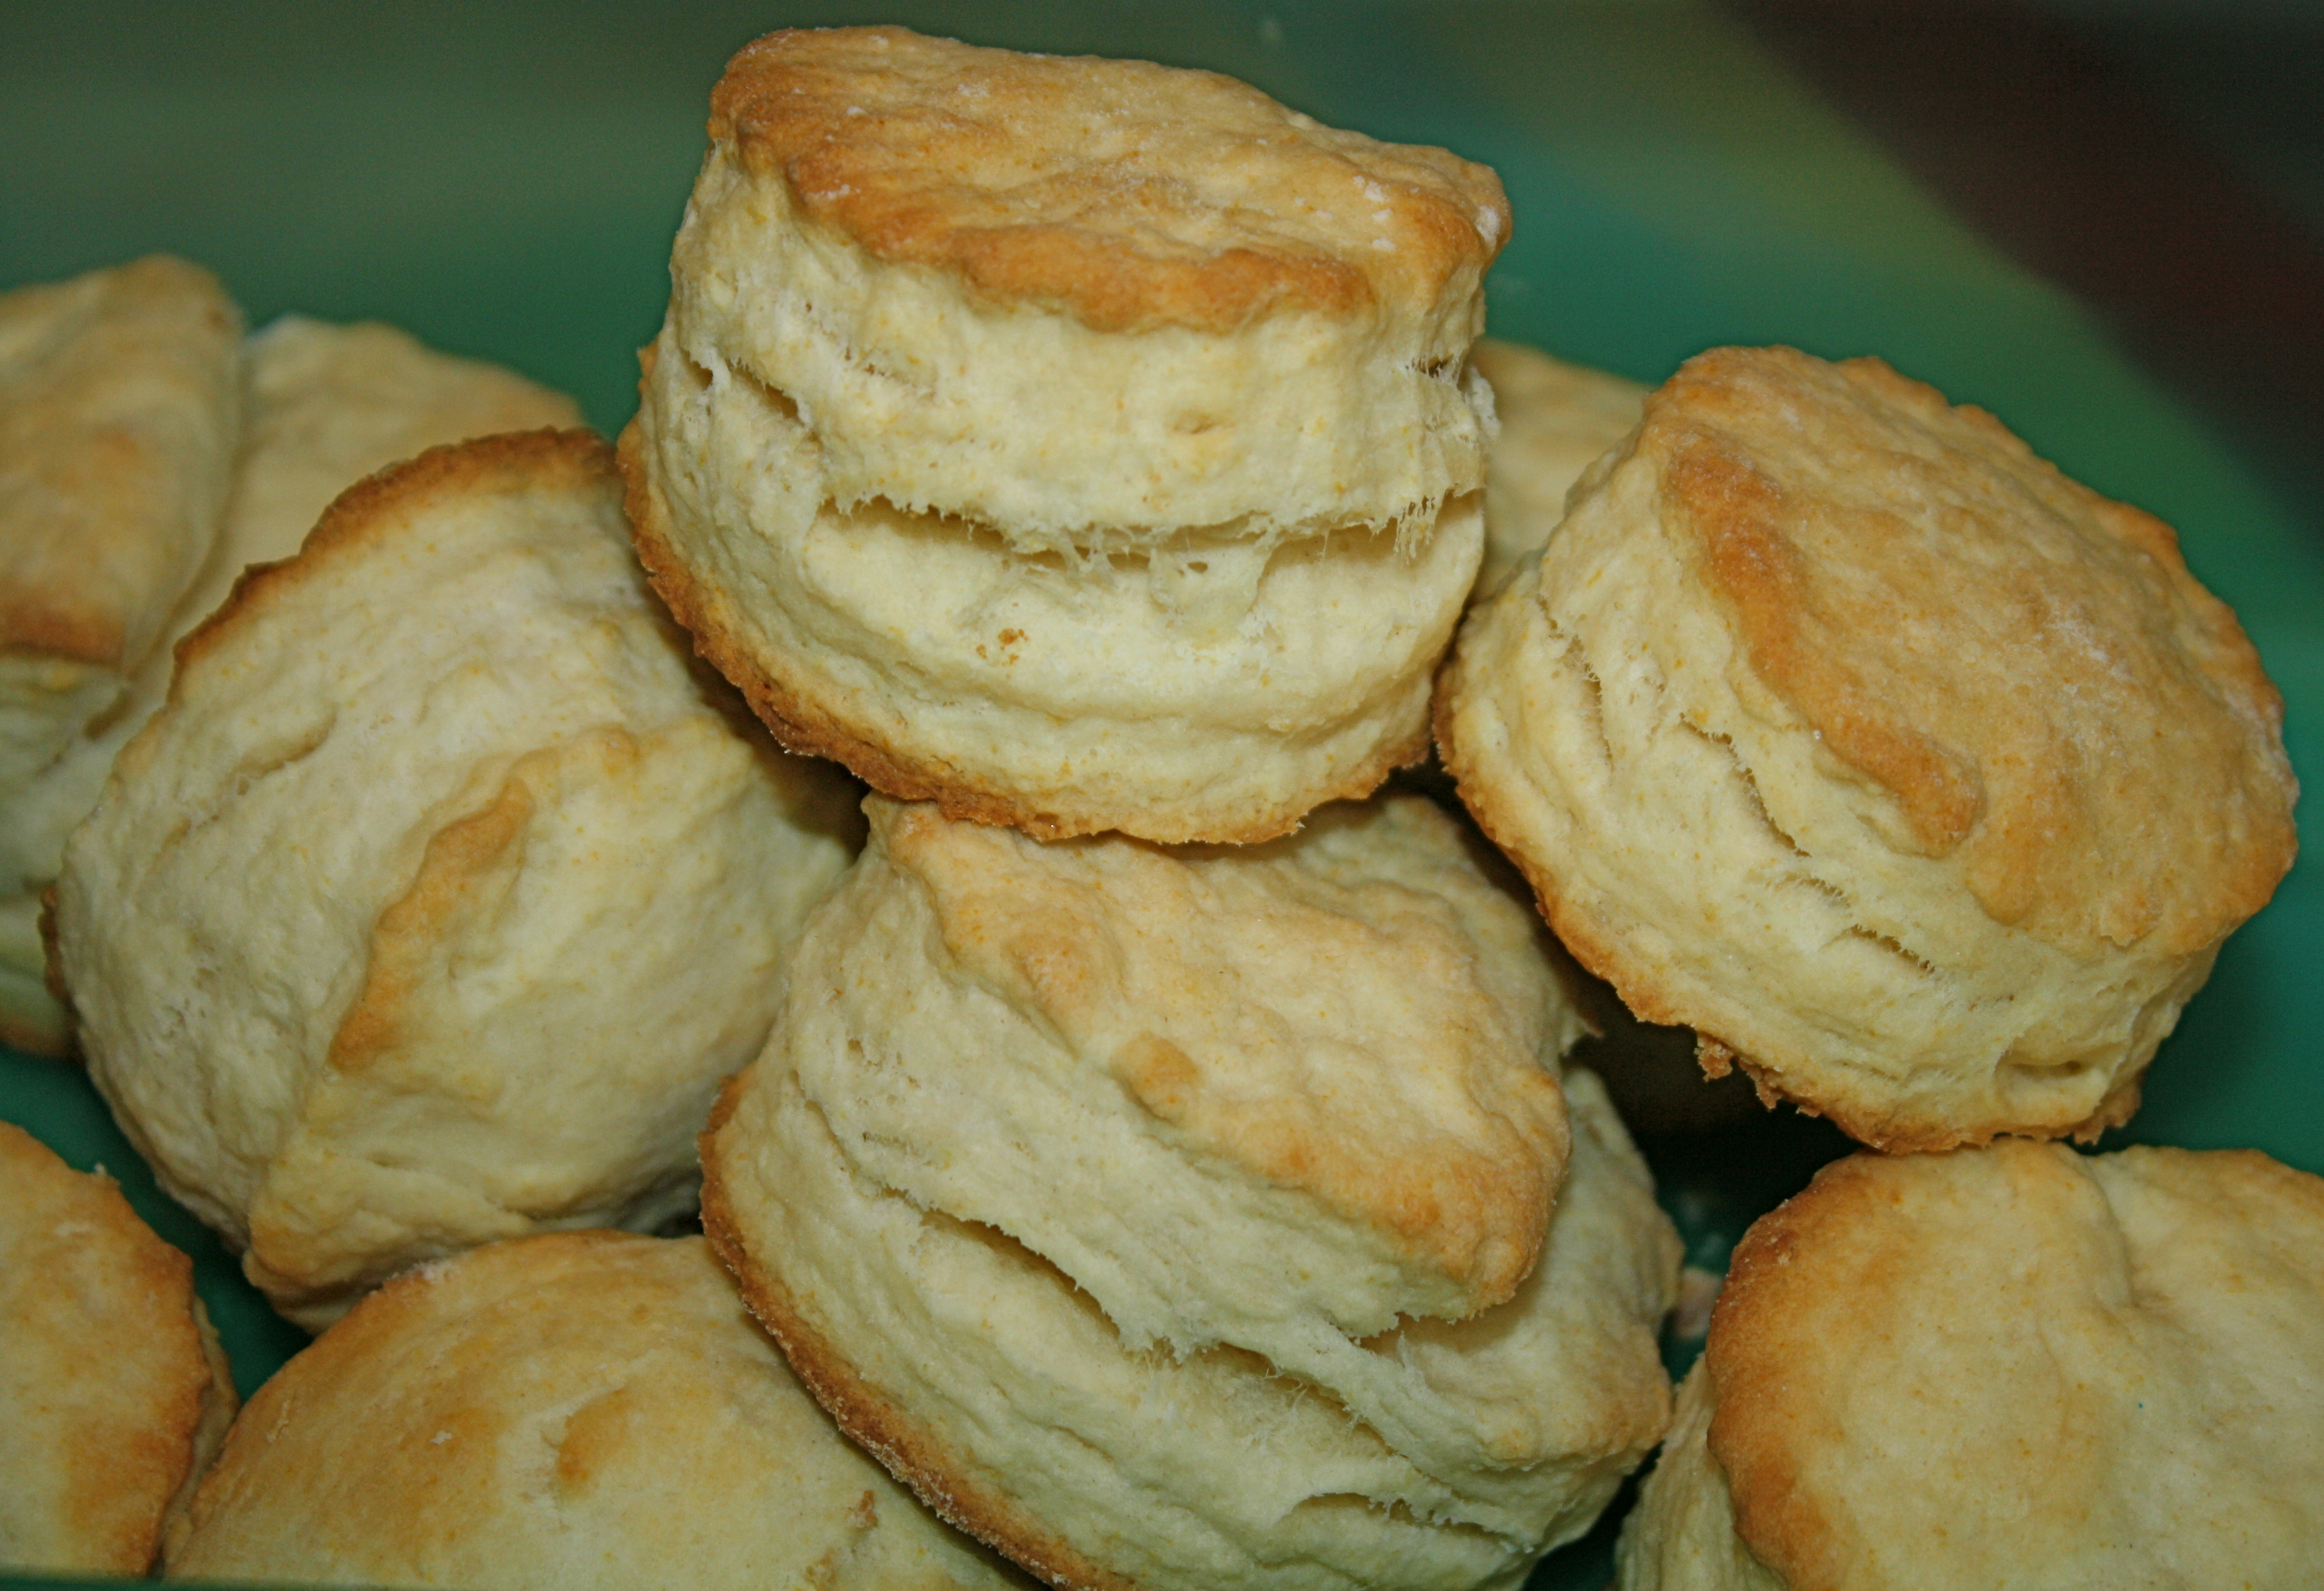 Layered Buttermilk Biscuits | The Quotable Kitchen